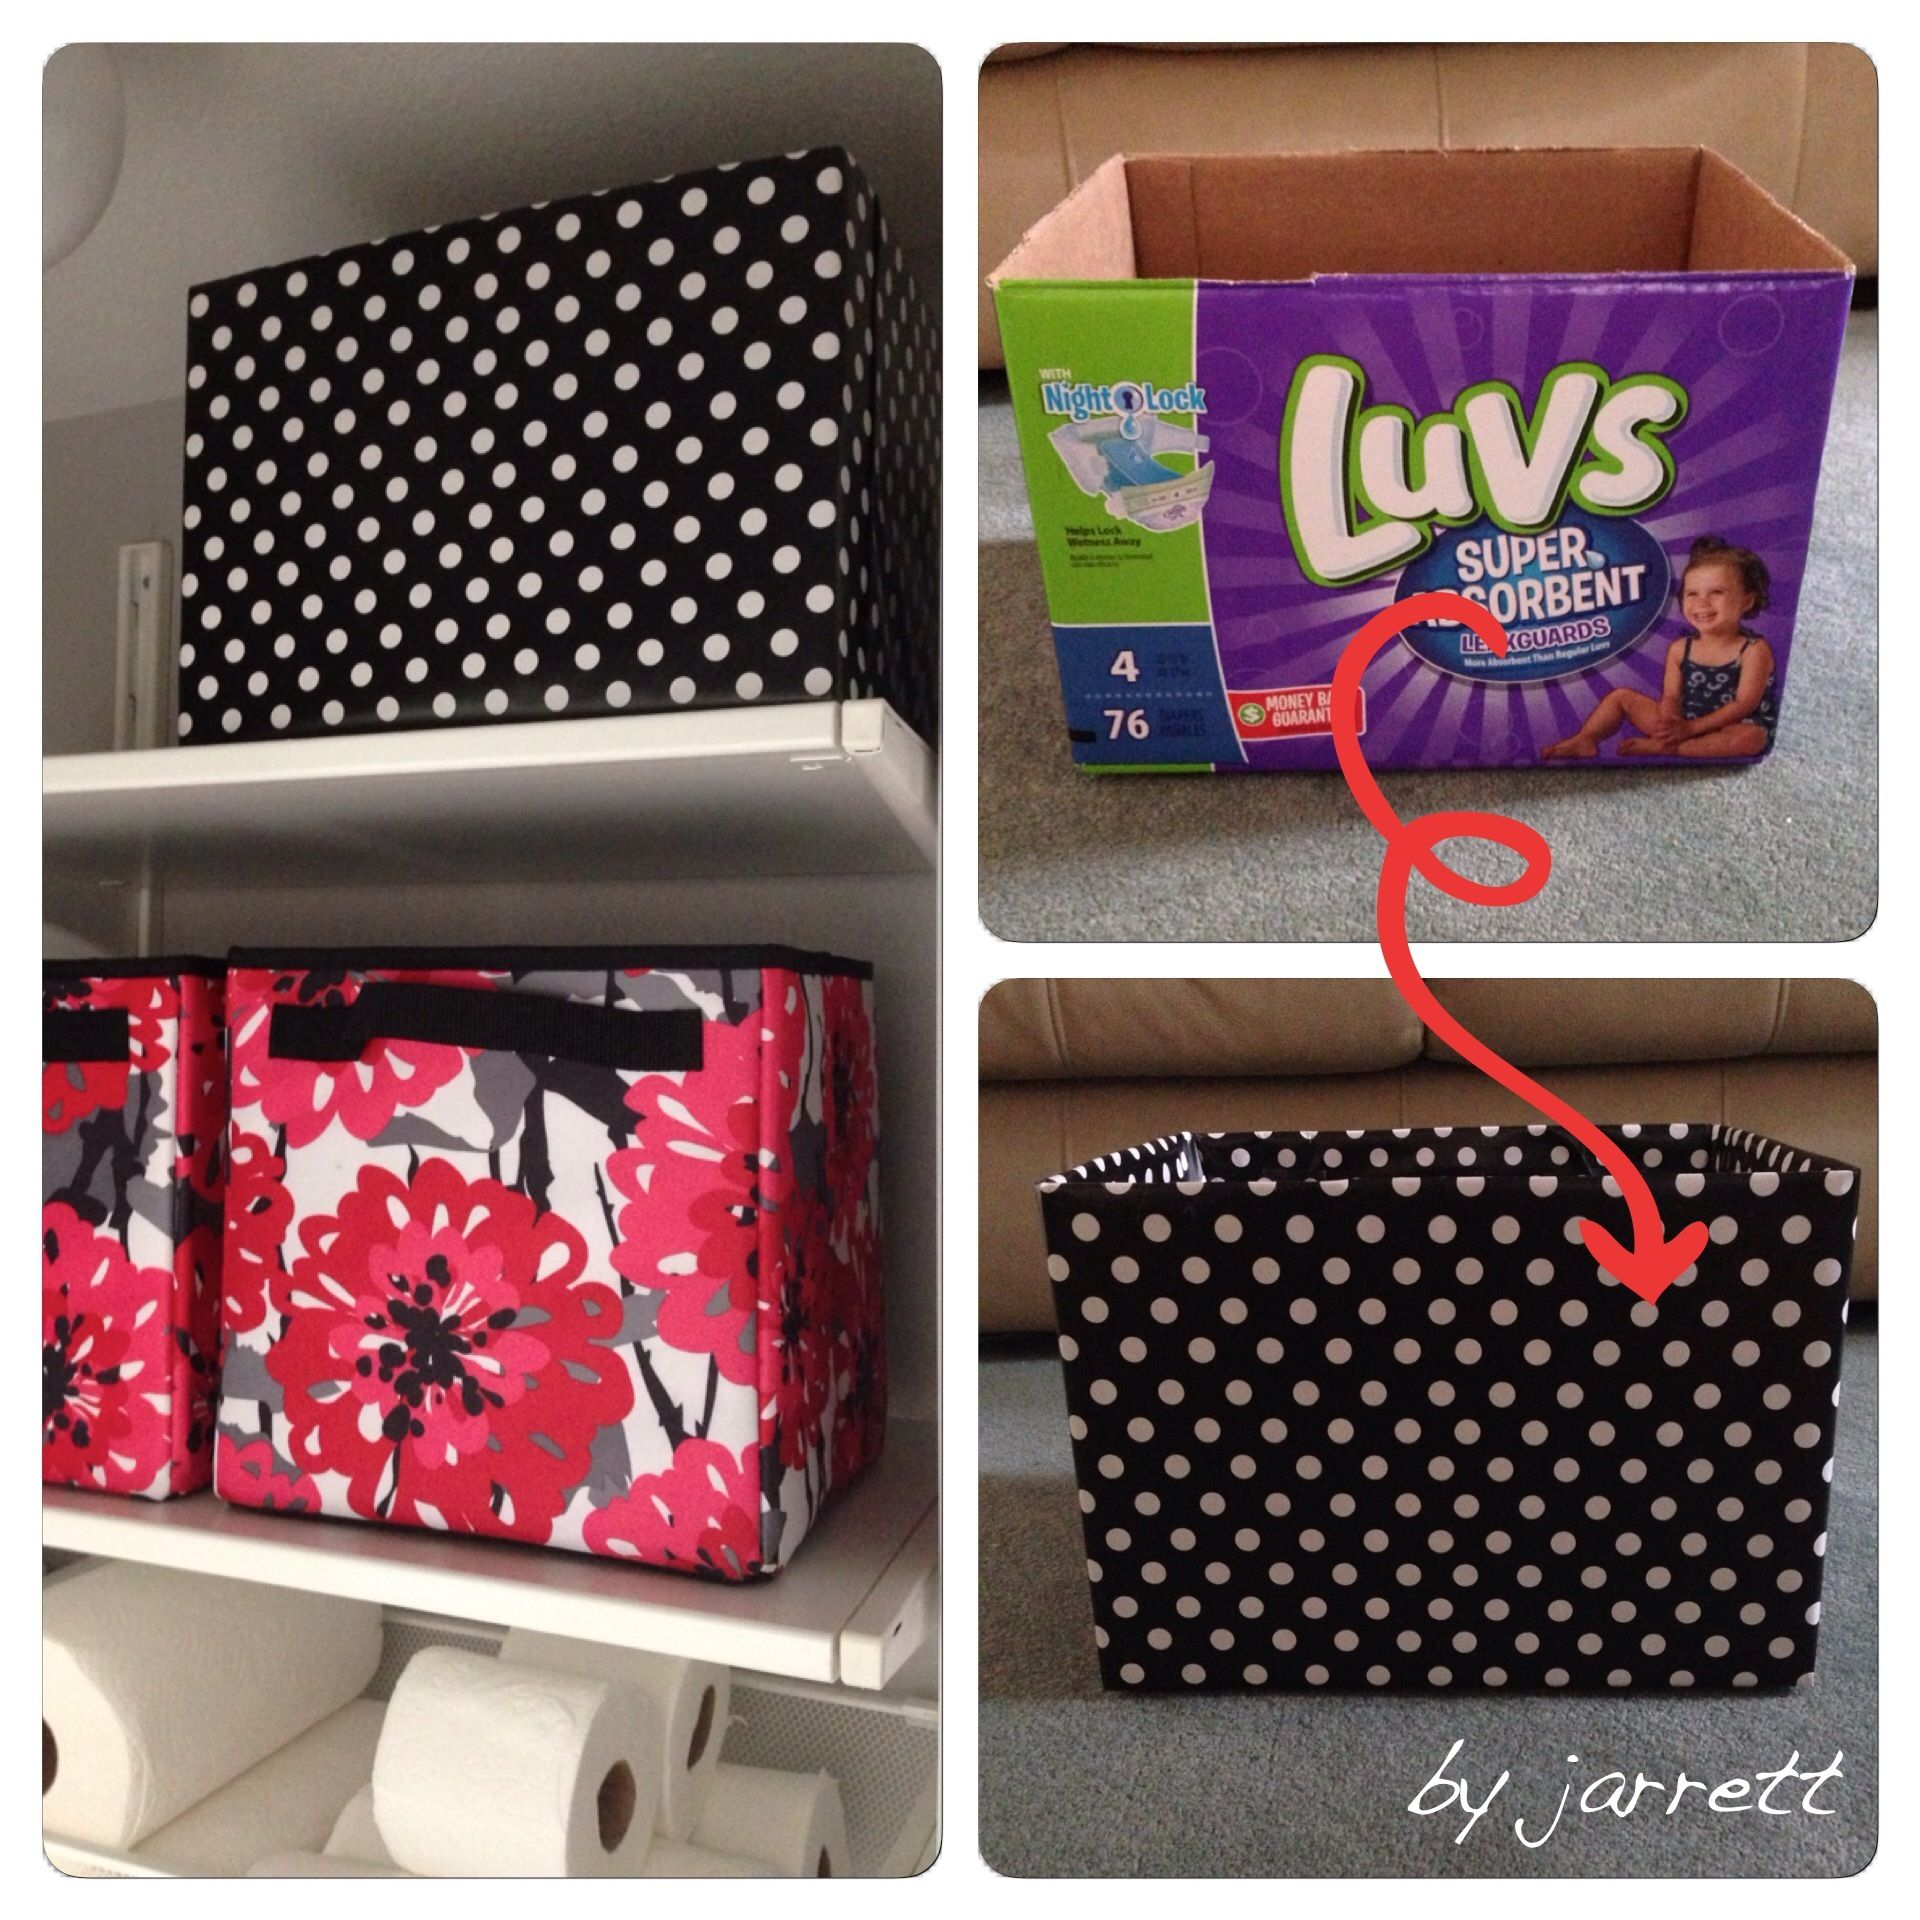 How To Repurpose Diaper Boxes For Home Storage Hubpages Home